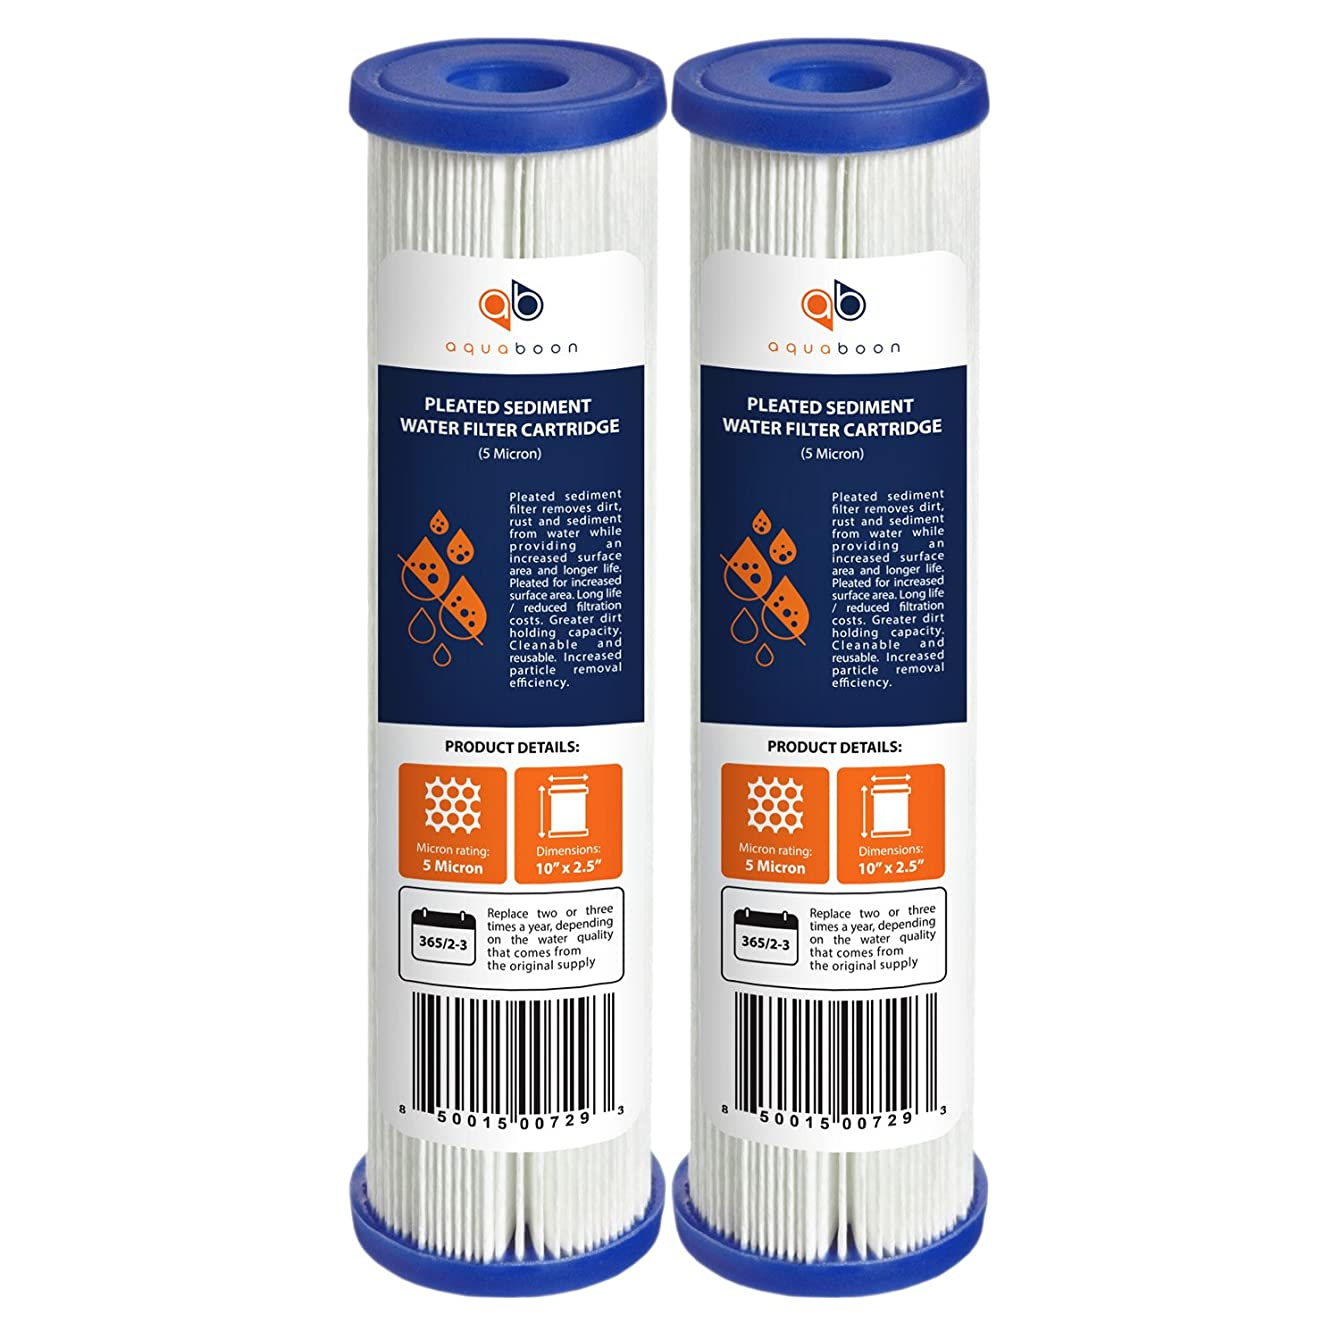 Aquaboon 2-Pack of 5 Micron Pleated Sediment Water Filter Cartridge 10